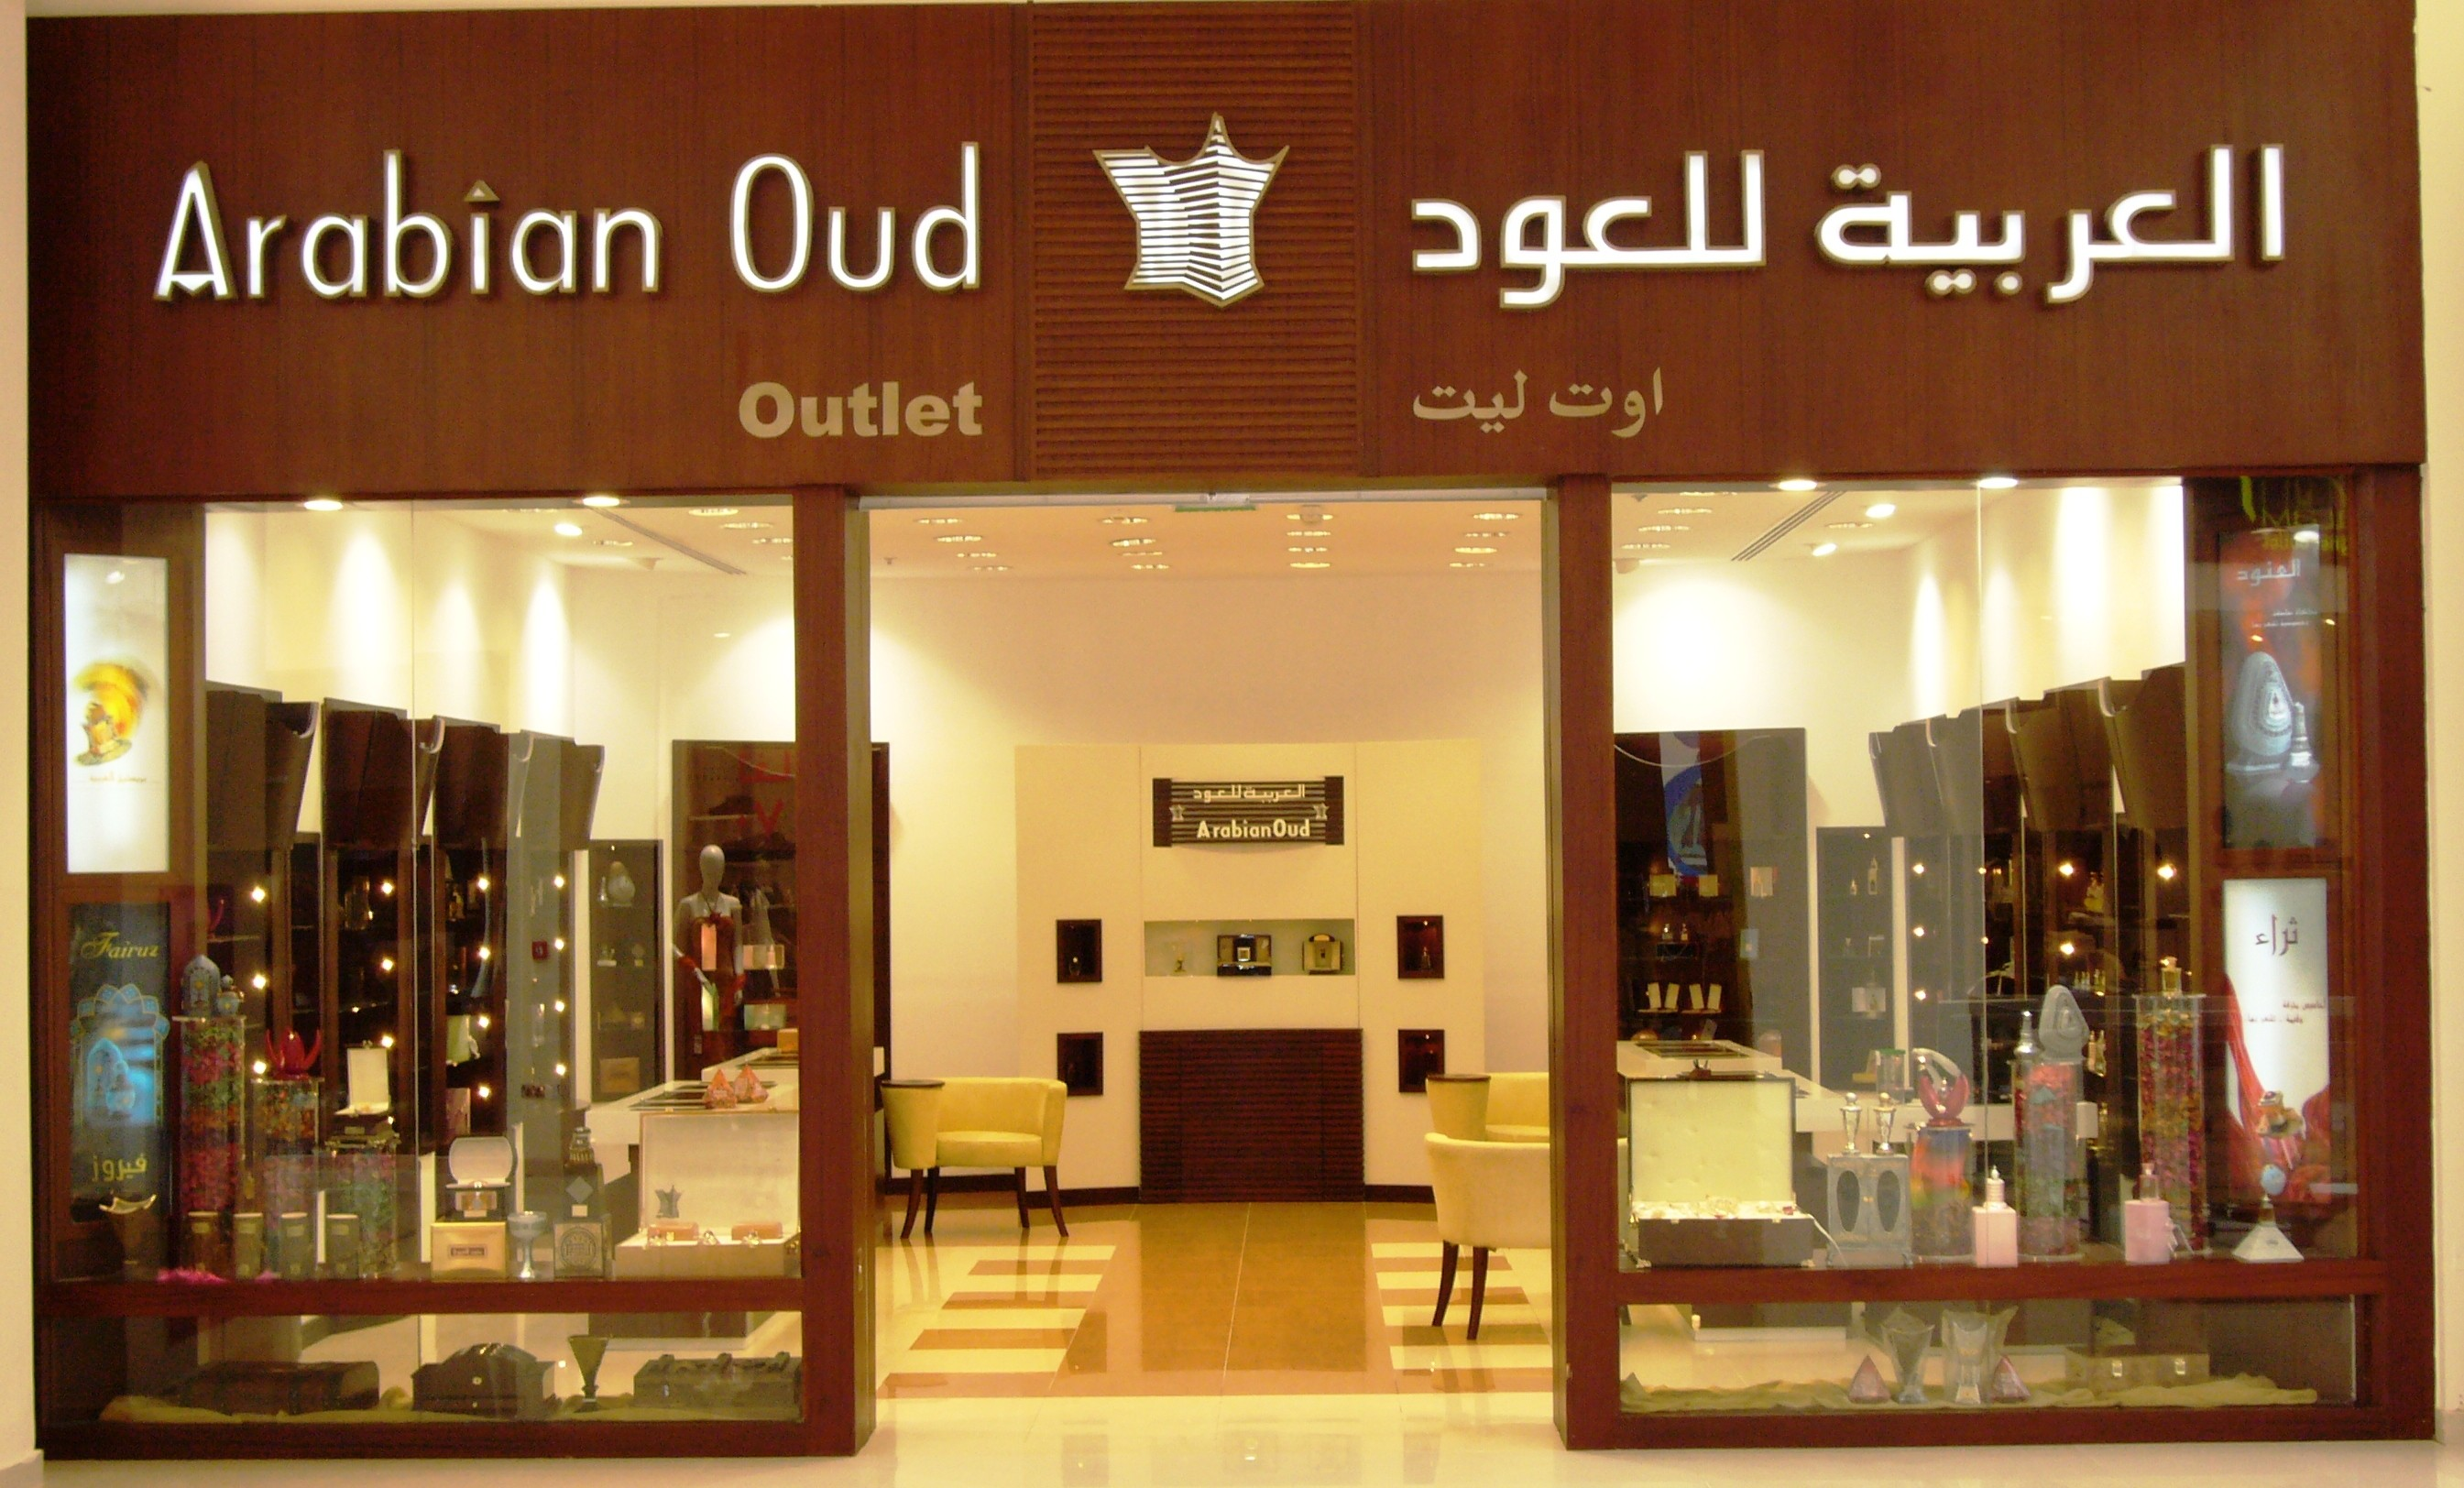 arabian oud a perfume retailer from Arabian oud fab: arabian oud the world's largest fragrance retailer and specialized in the incense and in oil perfumes they have about 560 retail stores across the globe and sells nearing 200 unique and luxurious fragrances.